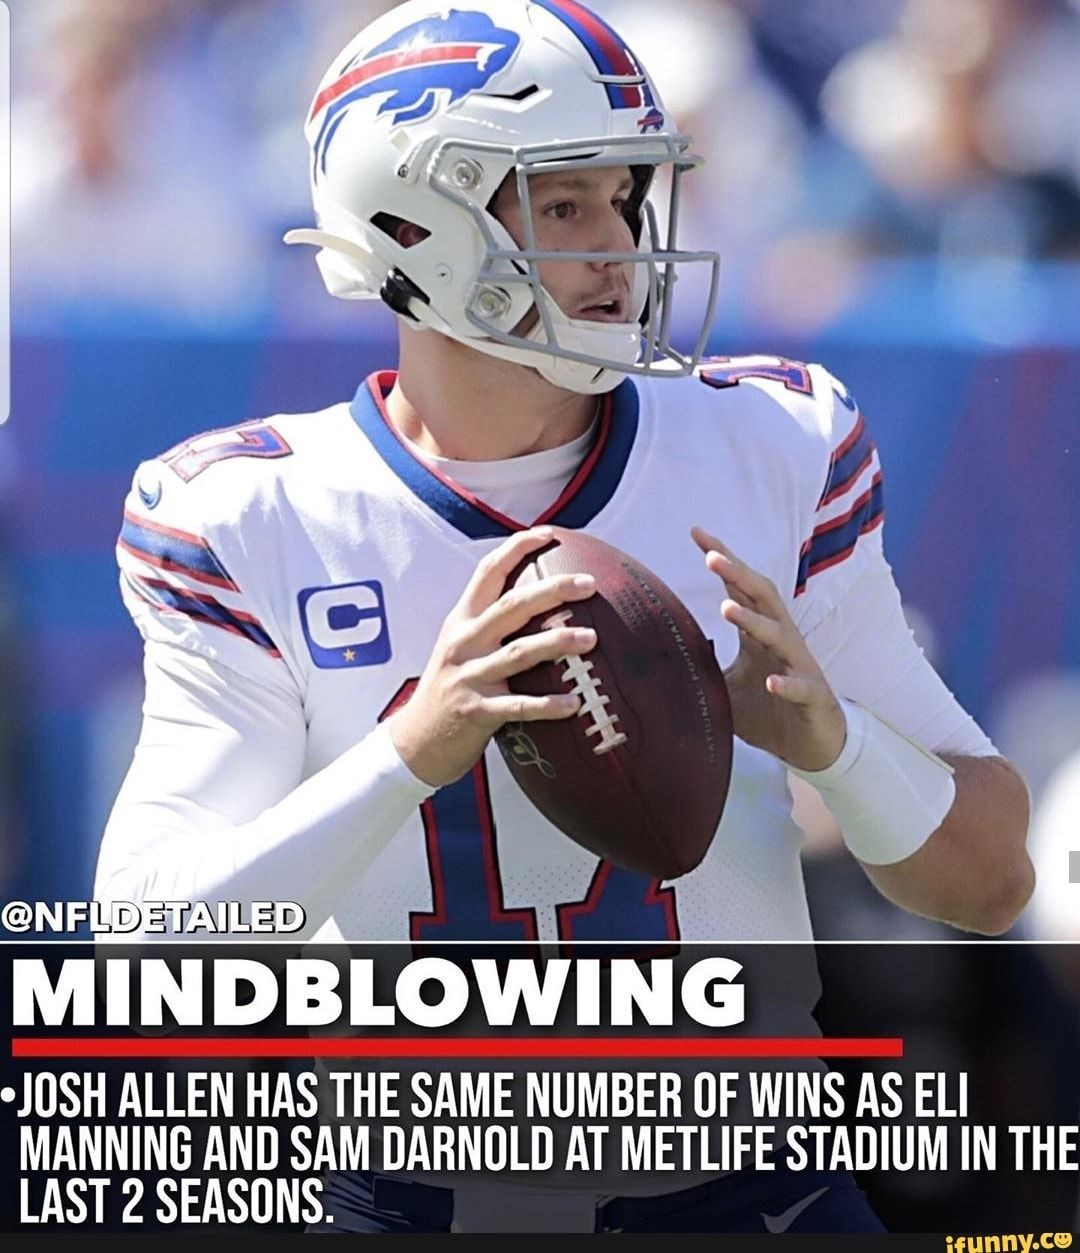 MINDBLOWING °JUSH ALLEN HAS THE SAME NUMBER DF WINS AS ELI